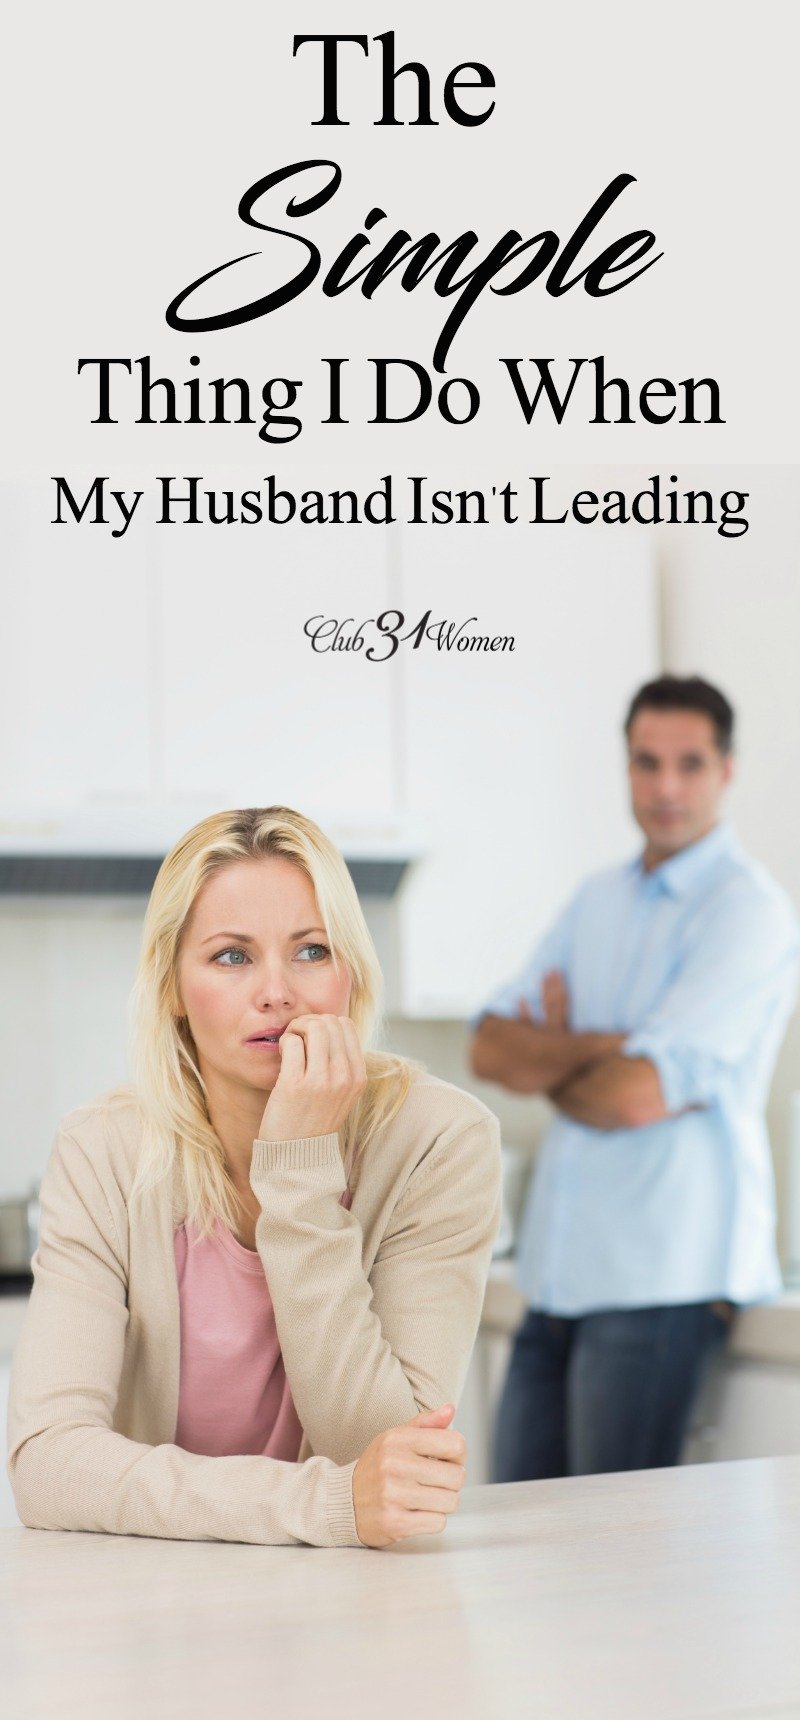 Why does it frustrate us wives so when our husbands aren't leading in the things that are spiritual? Is that something a wife should change? via @Club31Women